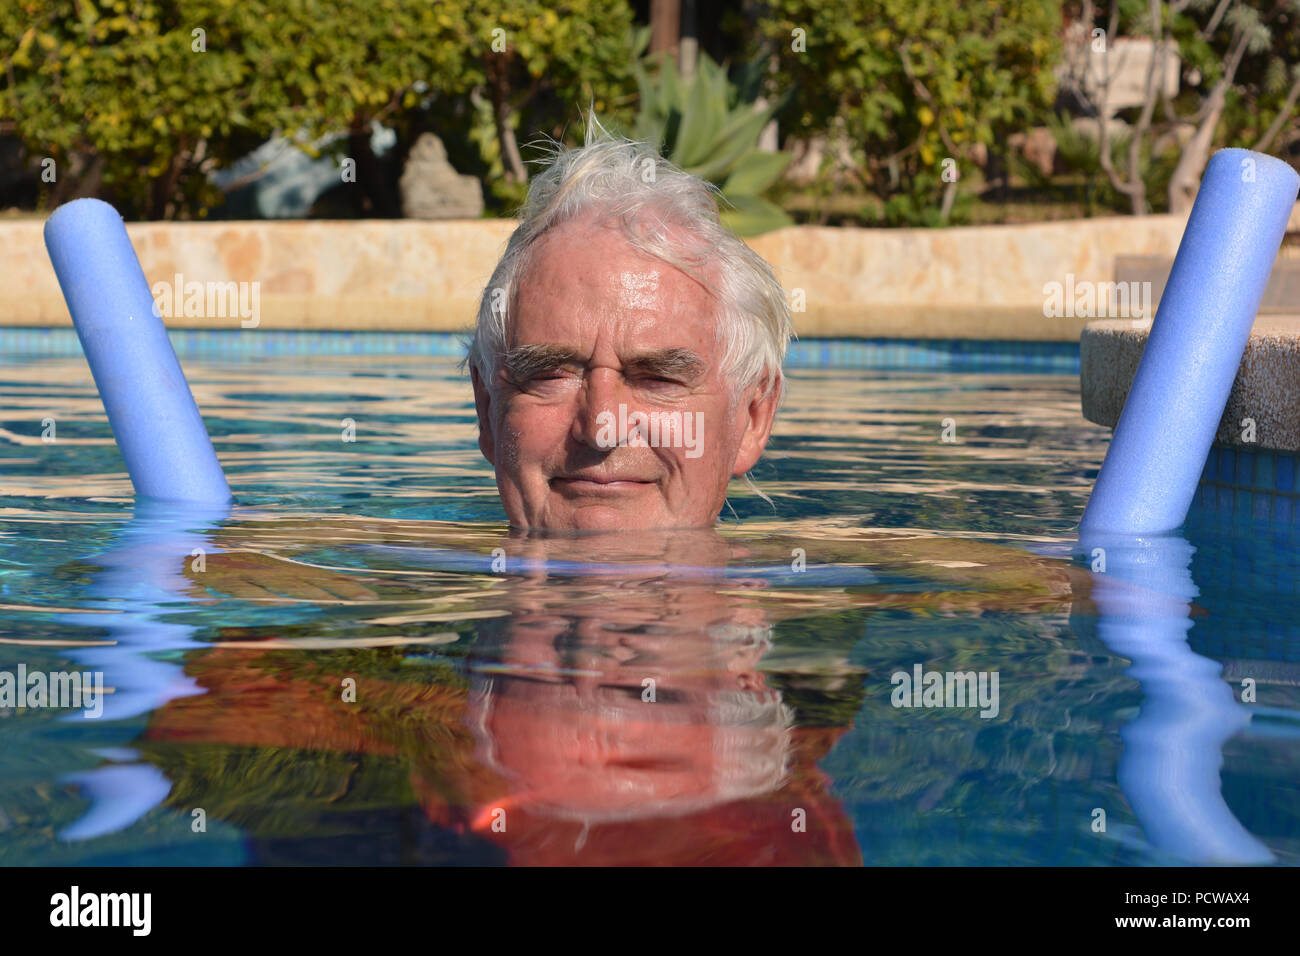 Senior man floating on a pool noodle in a swimming pool, portrait. looking at camera - Stock Image